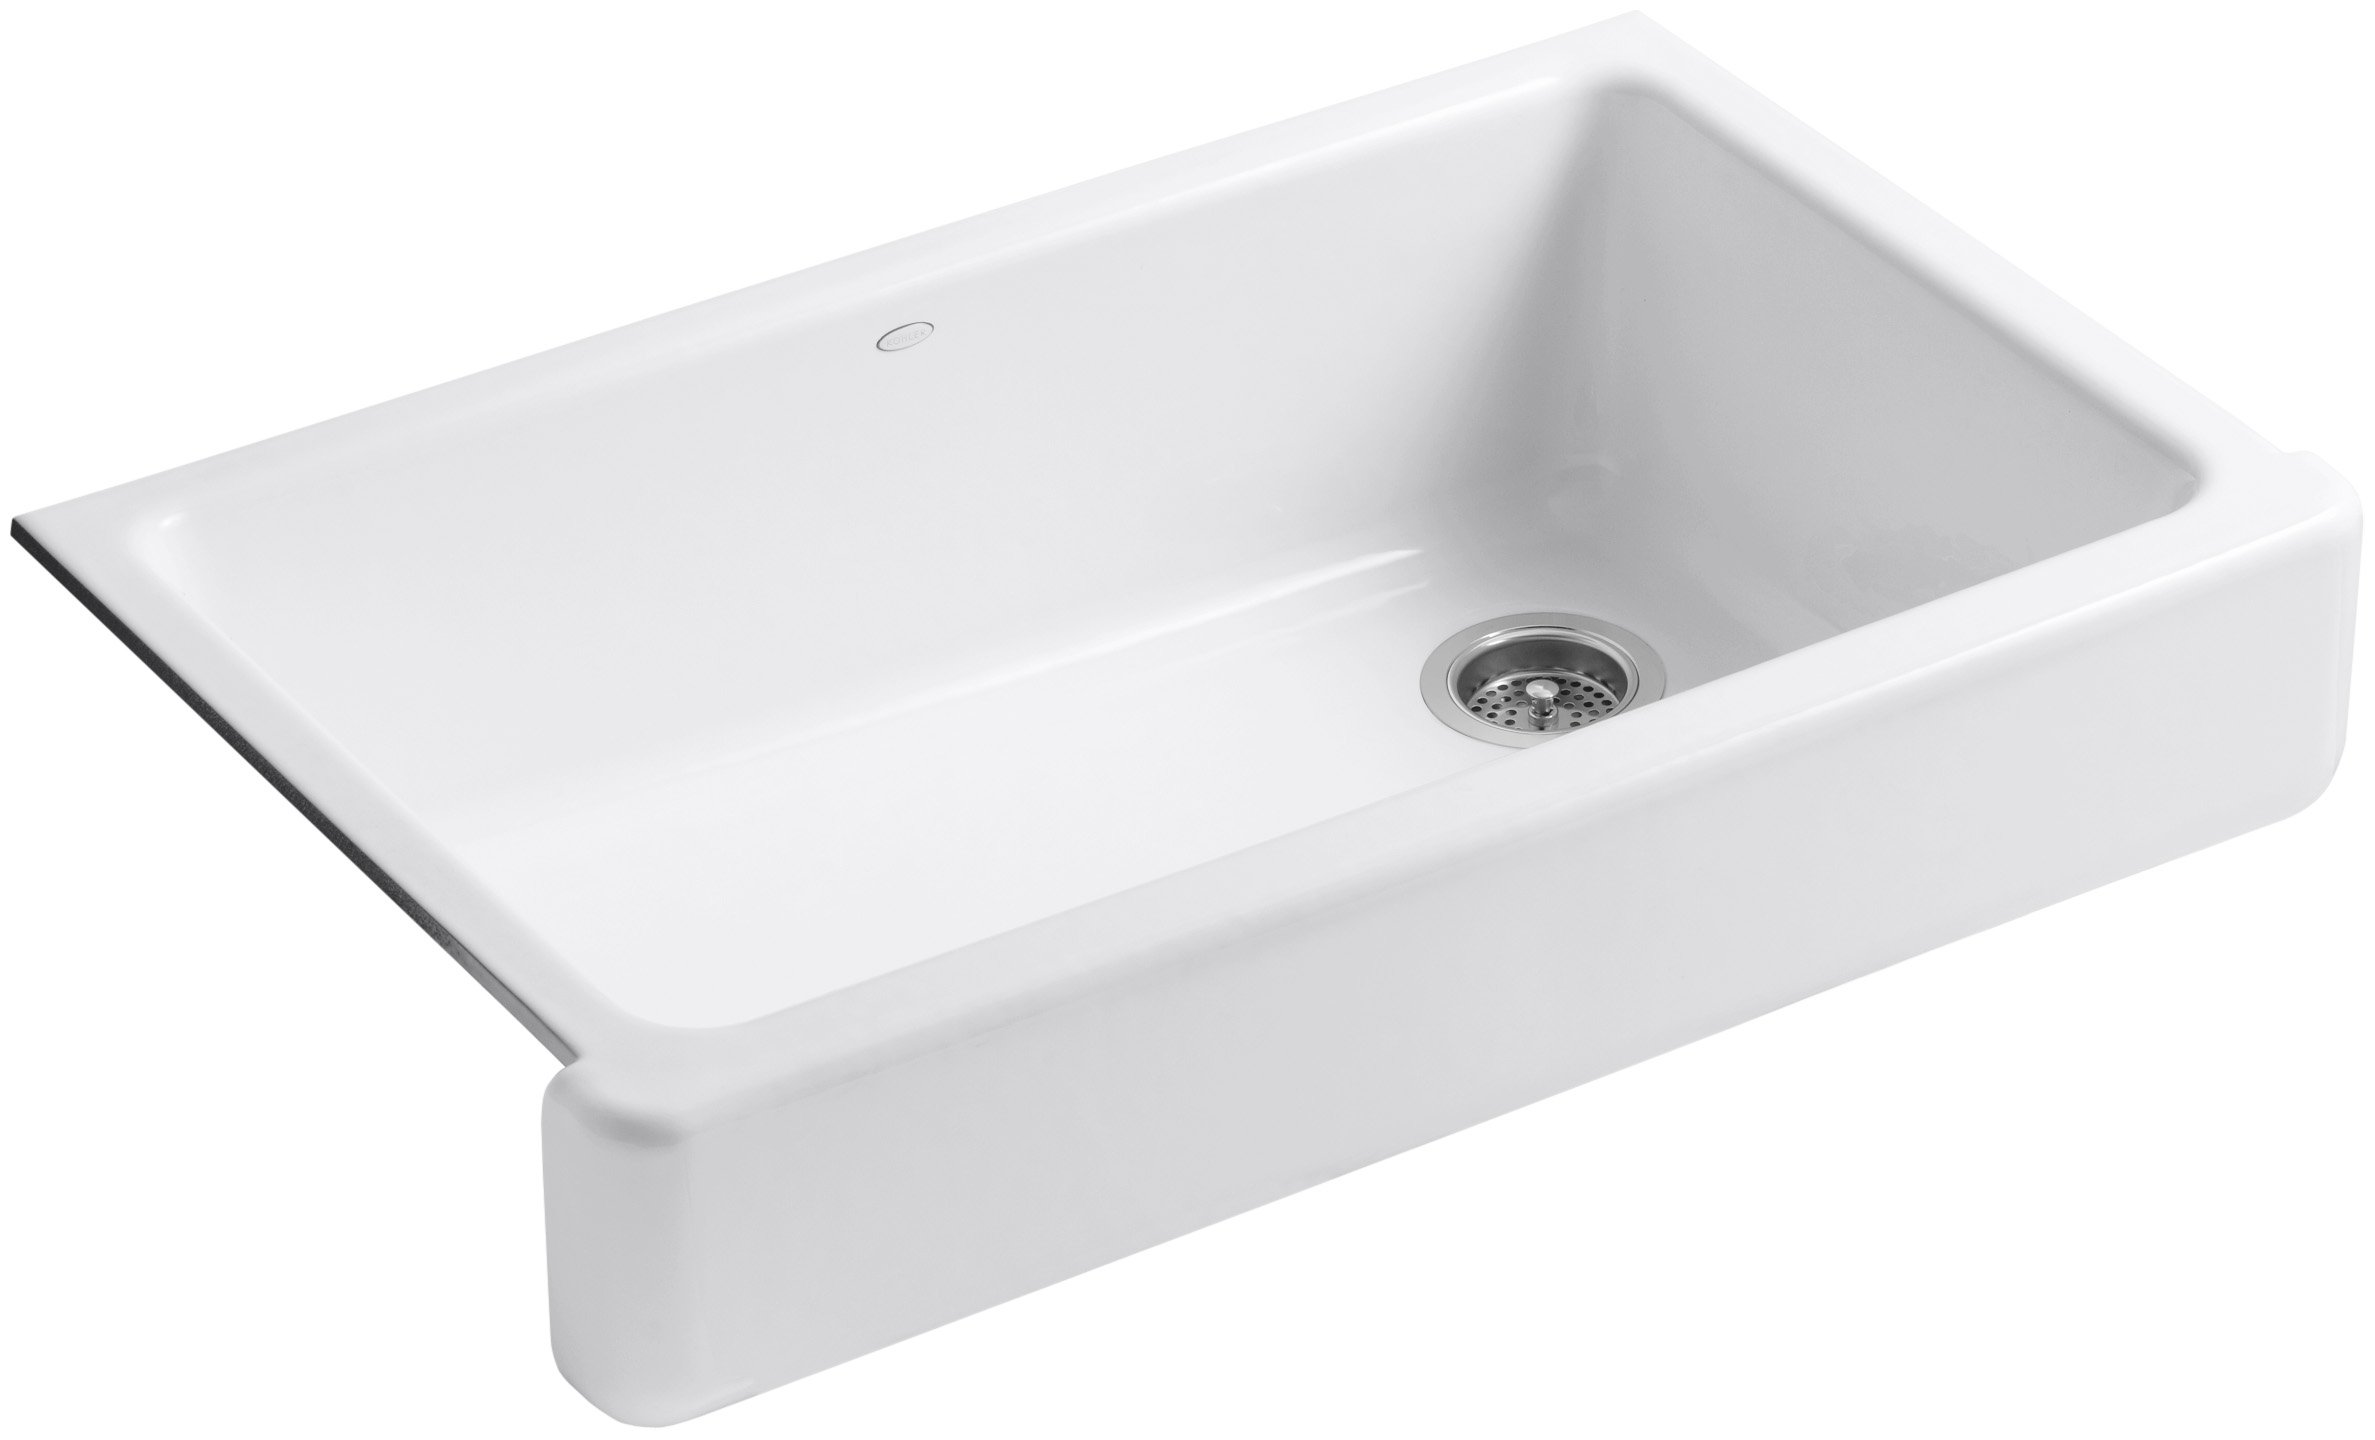 KOHLER K-6488-0 Whitehaven Self-Trimming Apron Front Single Basin Sink with Short Apron, White by Kohler